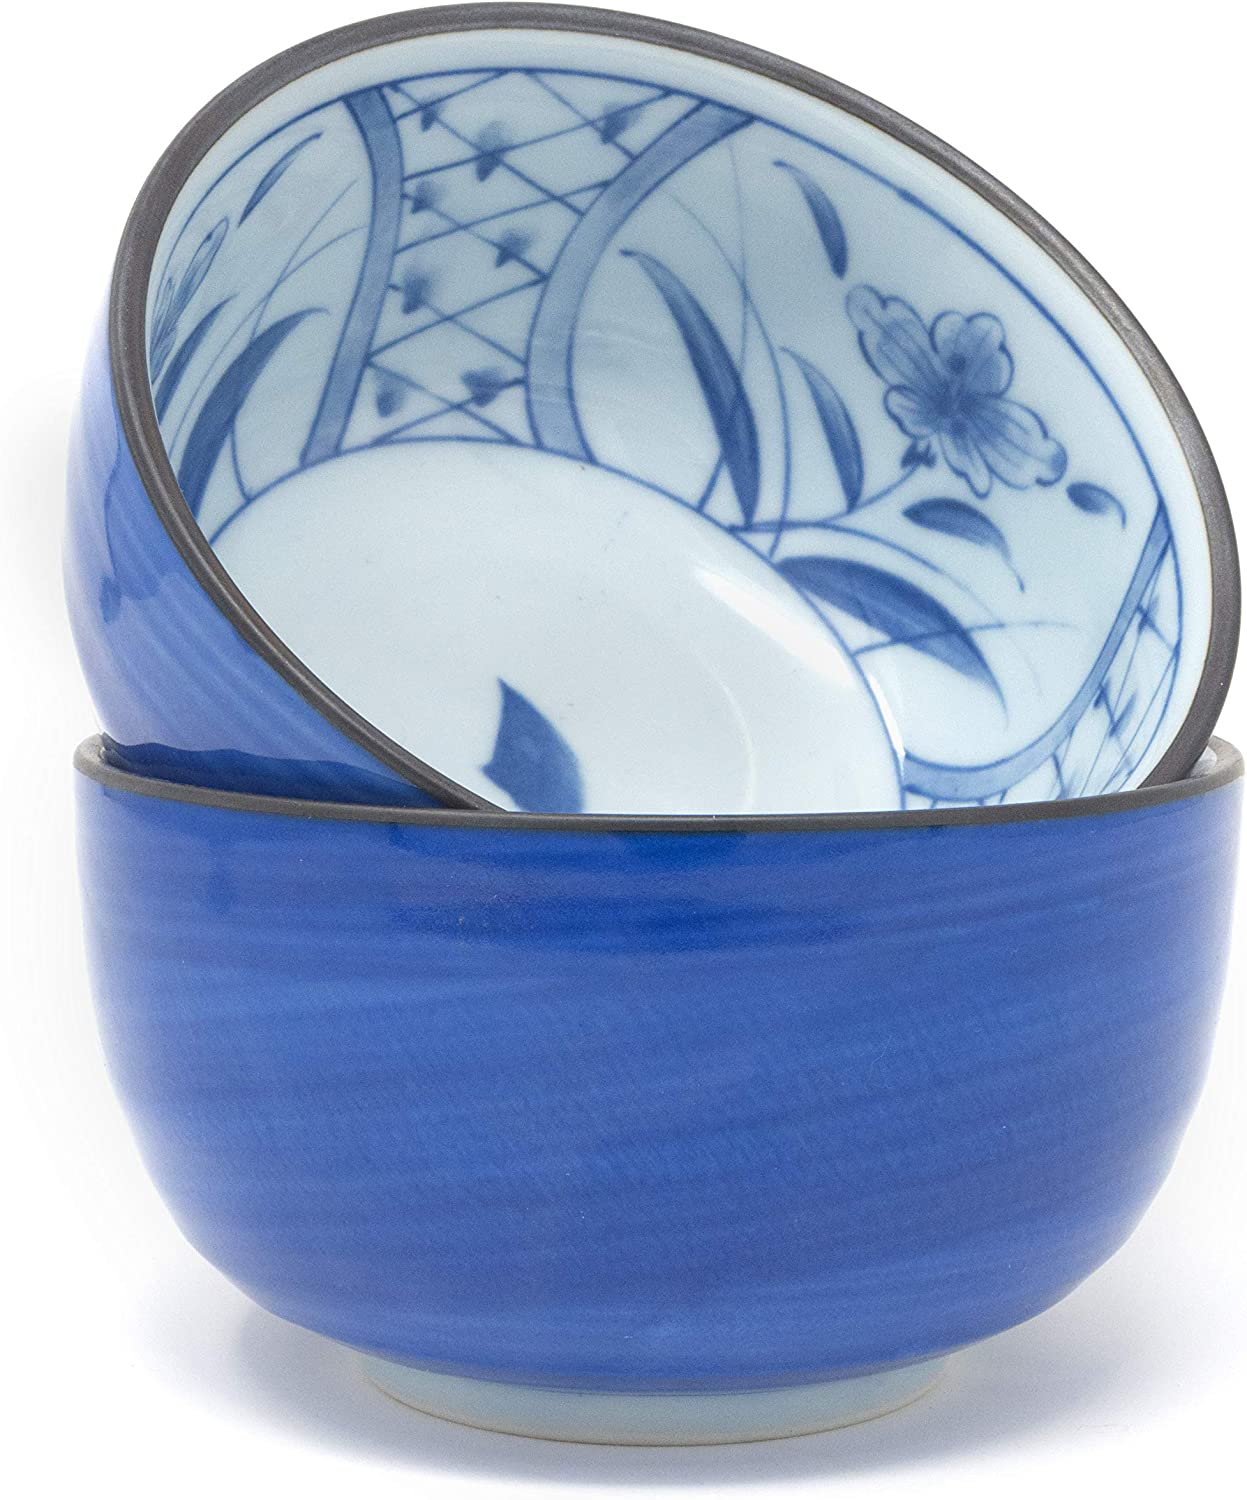 Traditional Japanese Porcelain National Selling and selling uniform free shipping Bowls - Ounce in Japan 18 Made